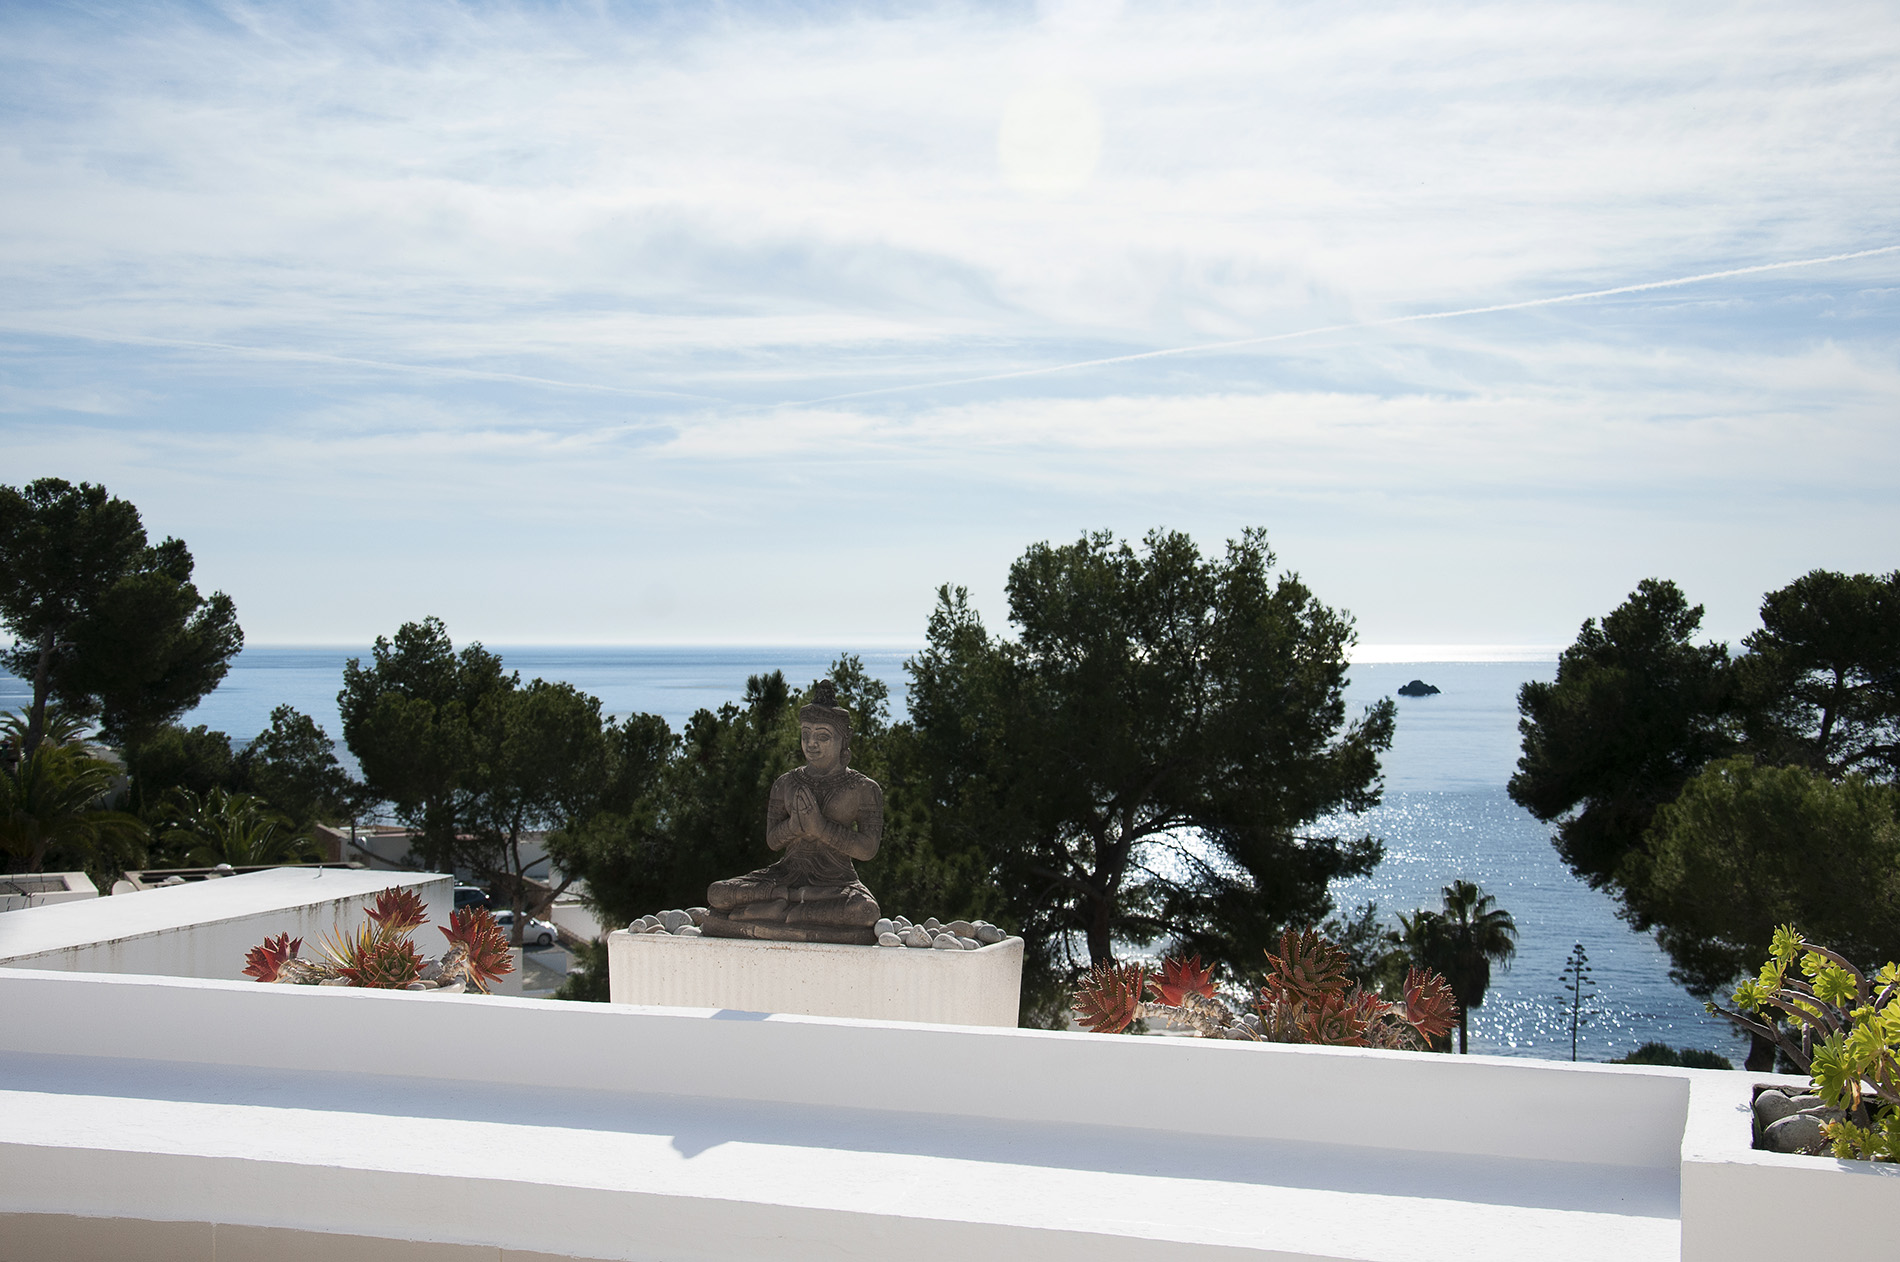 Apartamento para Venda às Stylish Apartment on East Coast with Sea view Ibiza, Ibiza, 07840 Espanha